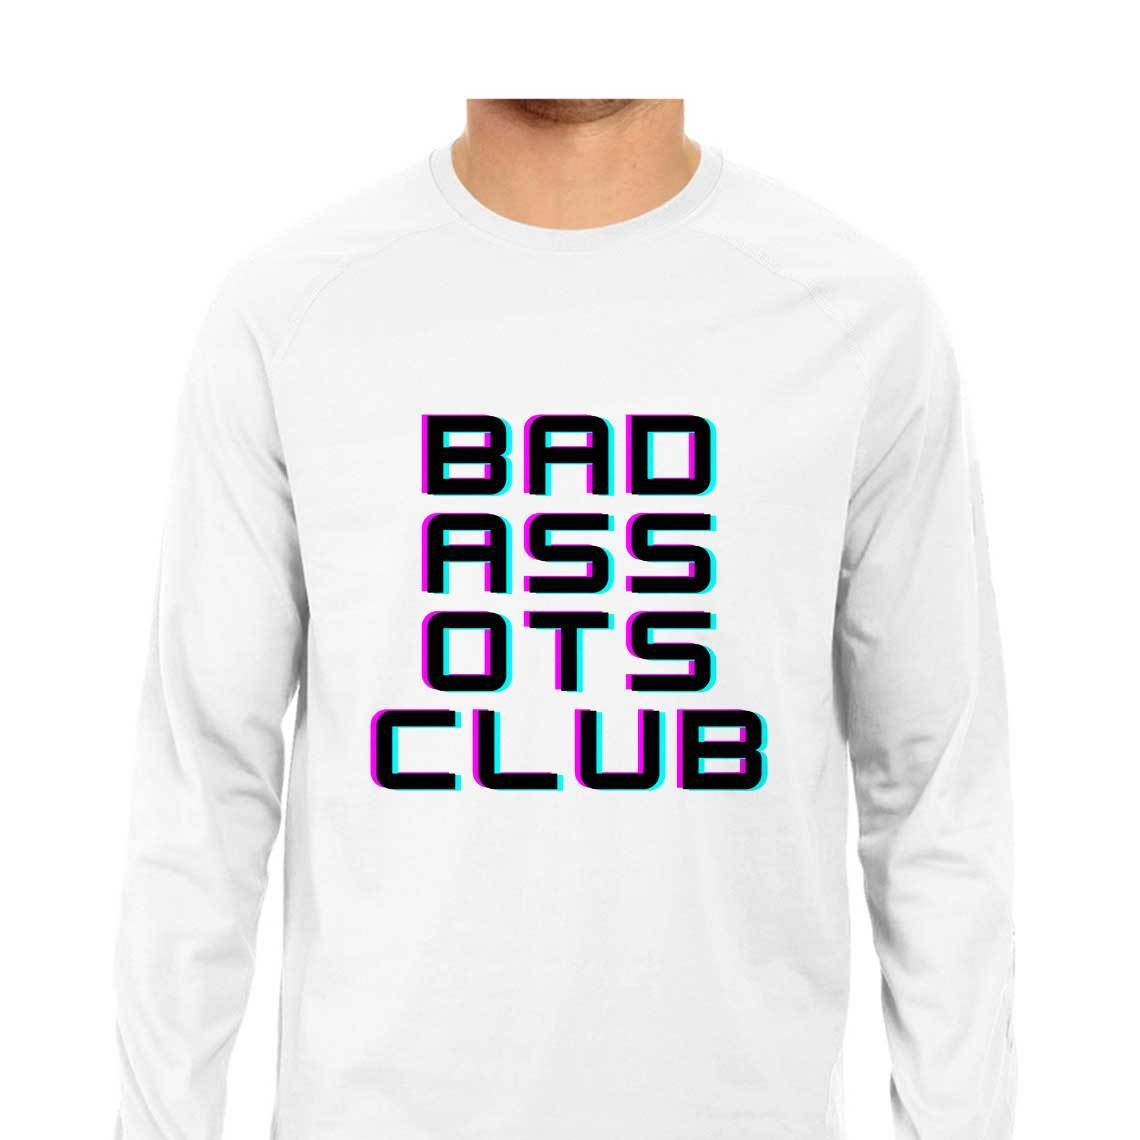 BADASS OTs CLUB (BLACK) - The OT Shop